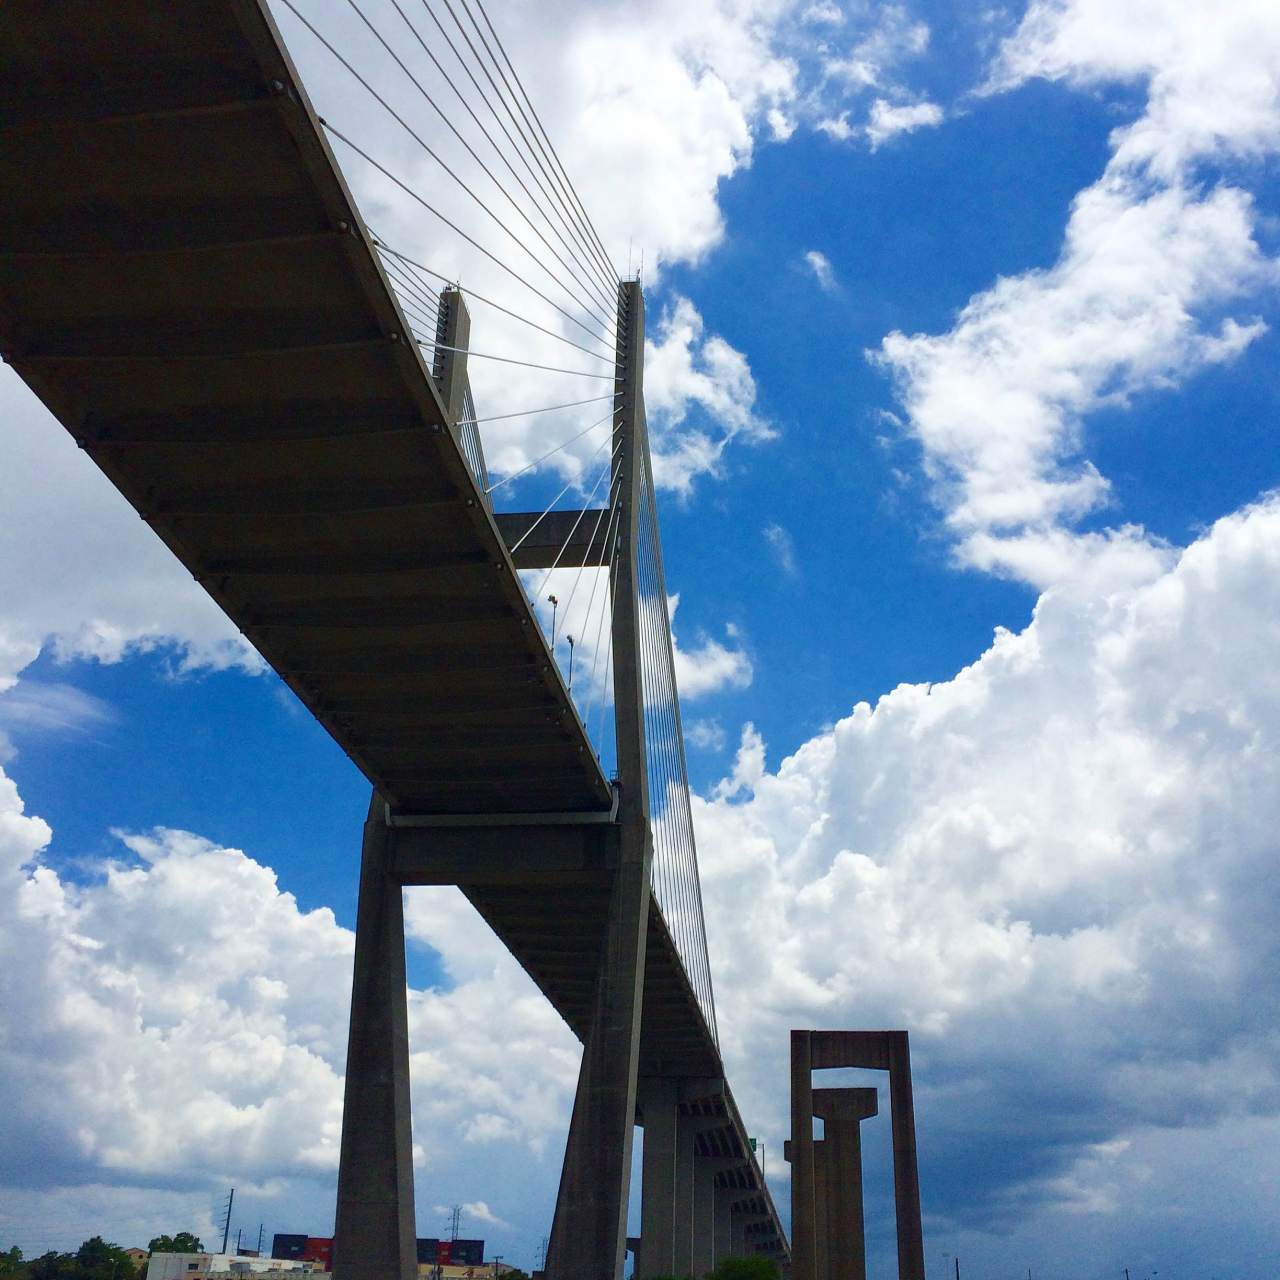 Today's On The Go Photo: Reaching New Heights in Savannah